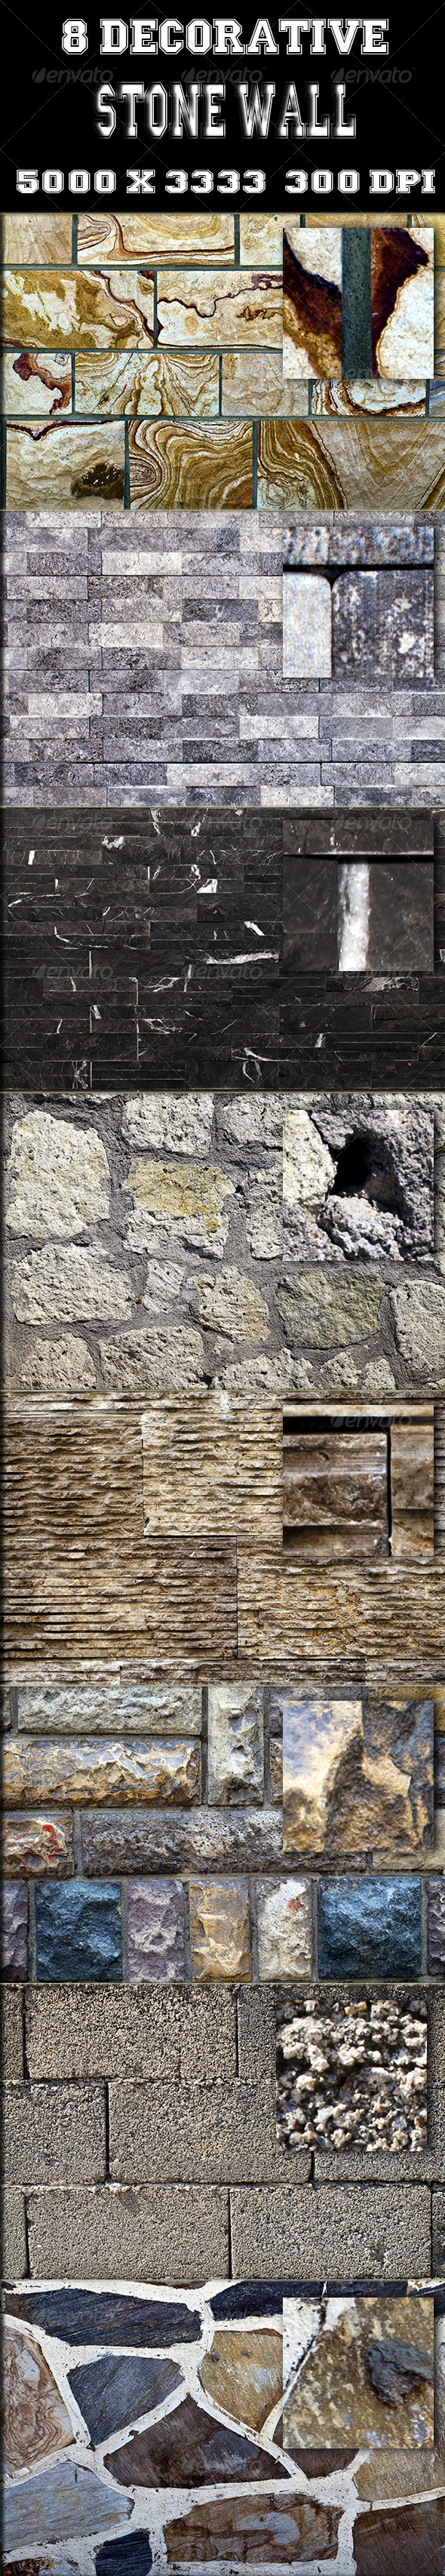 8 Decorative Stone Wall Texture - Stone Textures